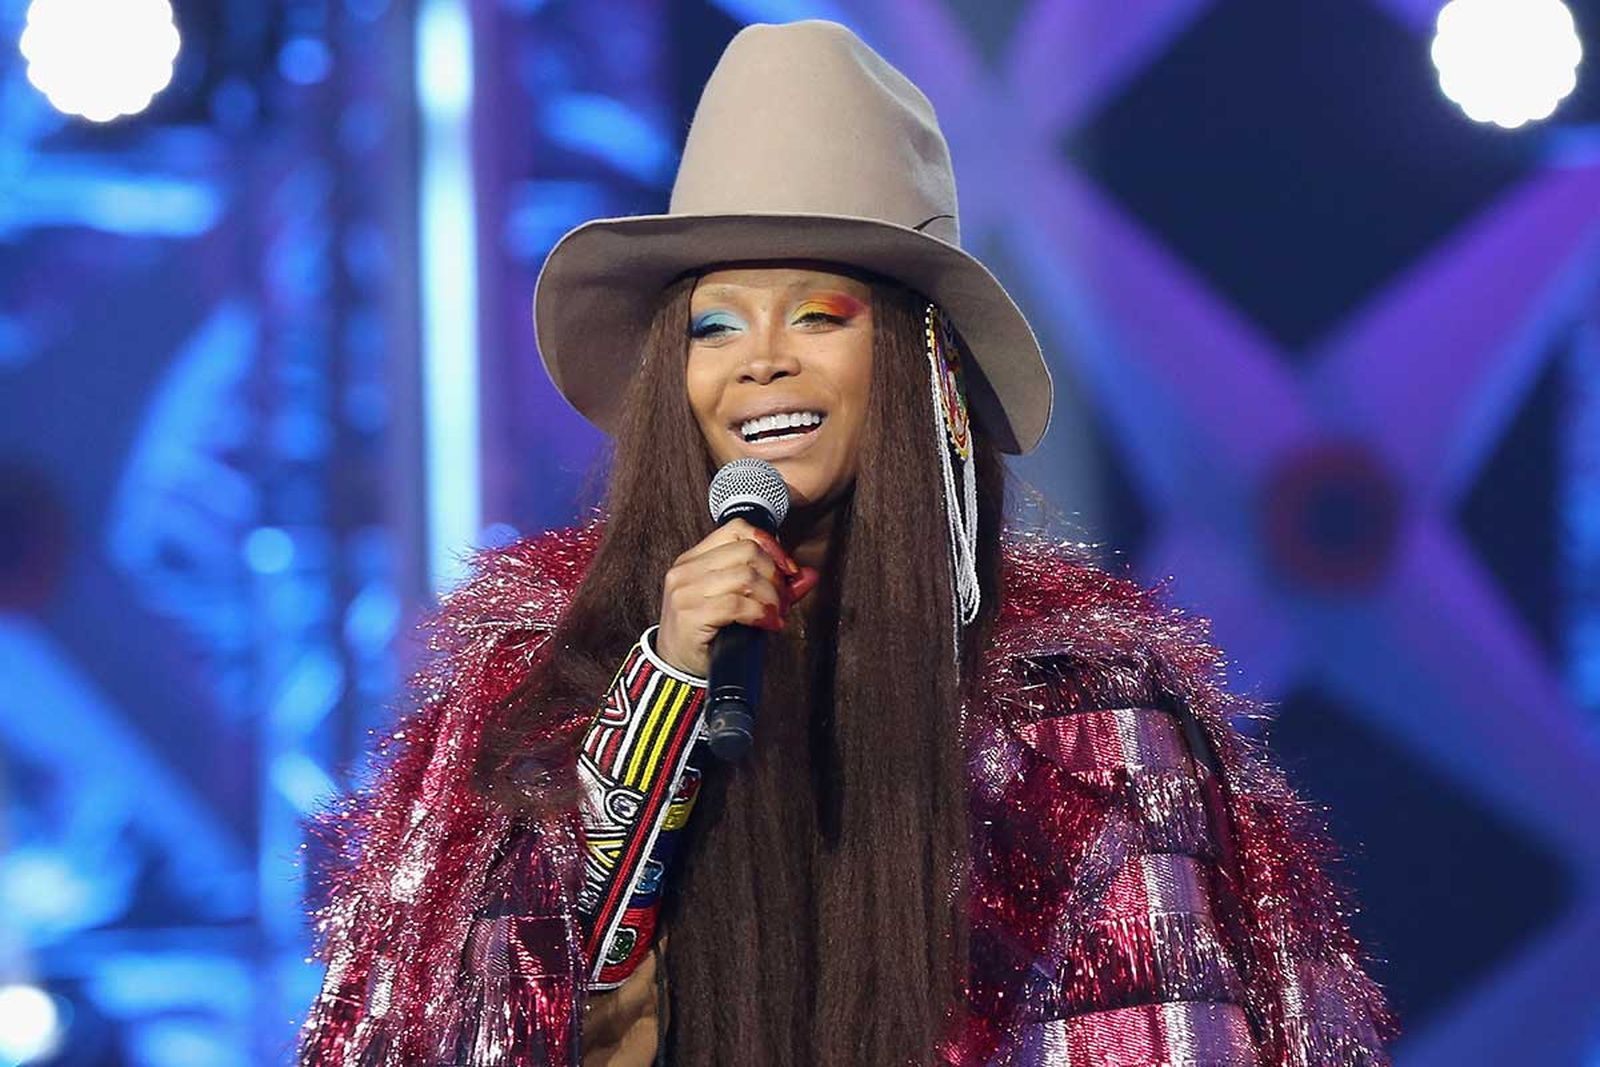 Erykah Badu performing on stage